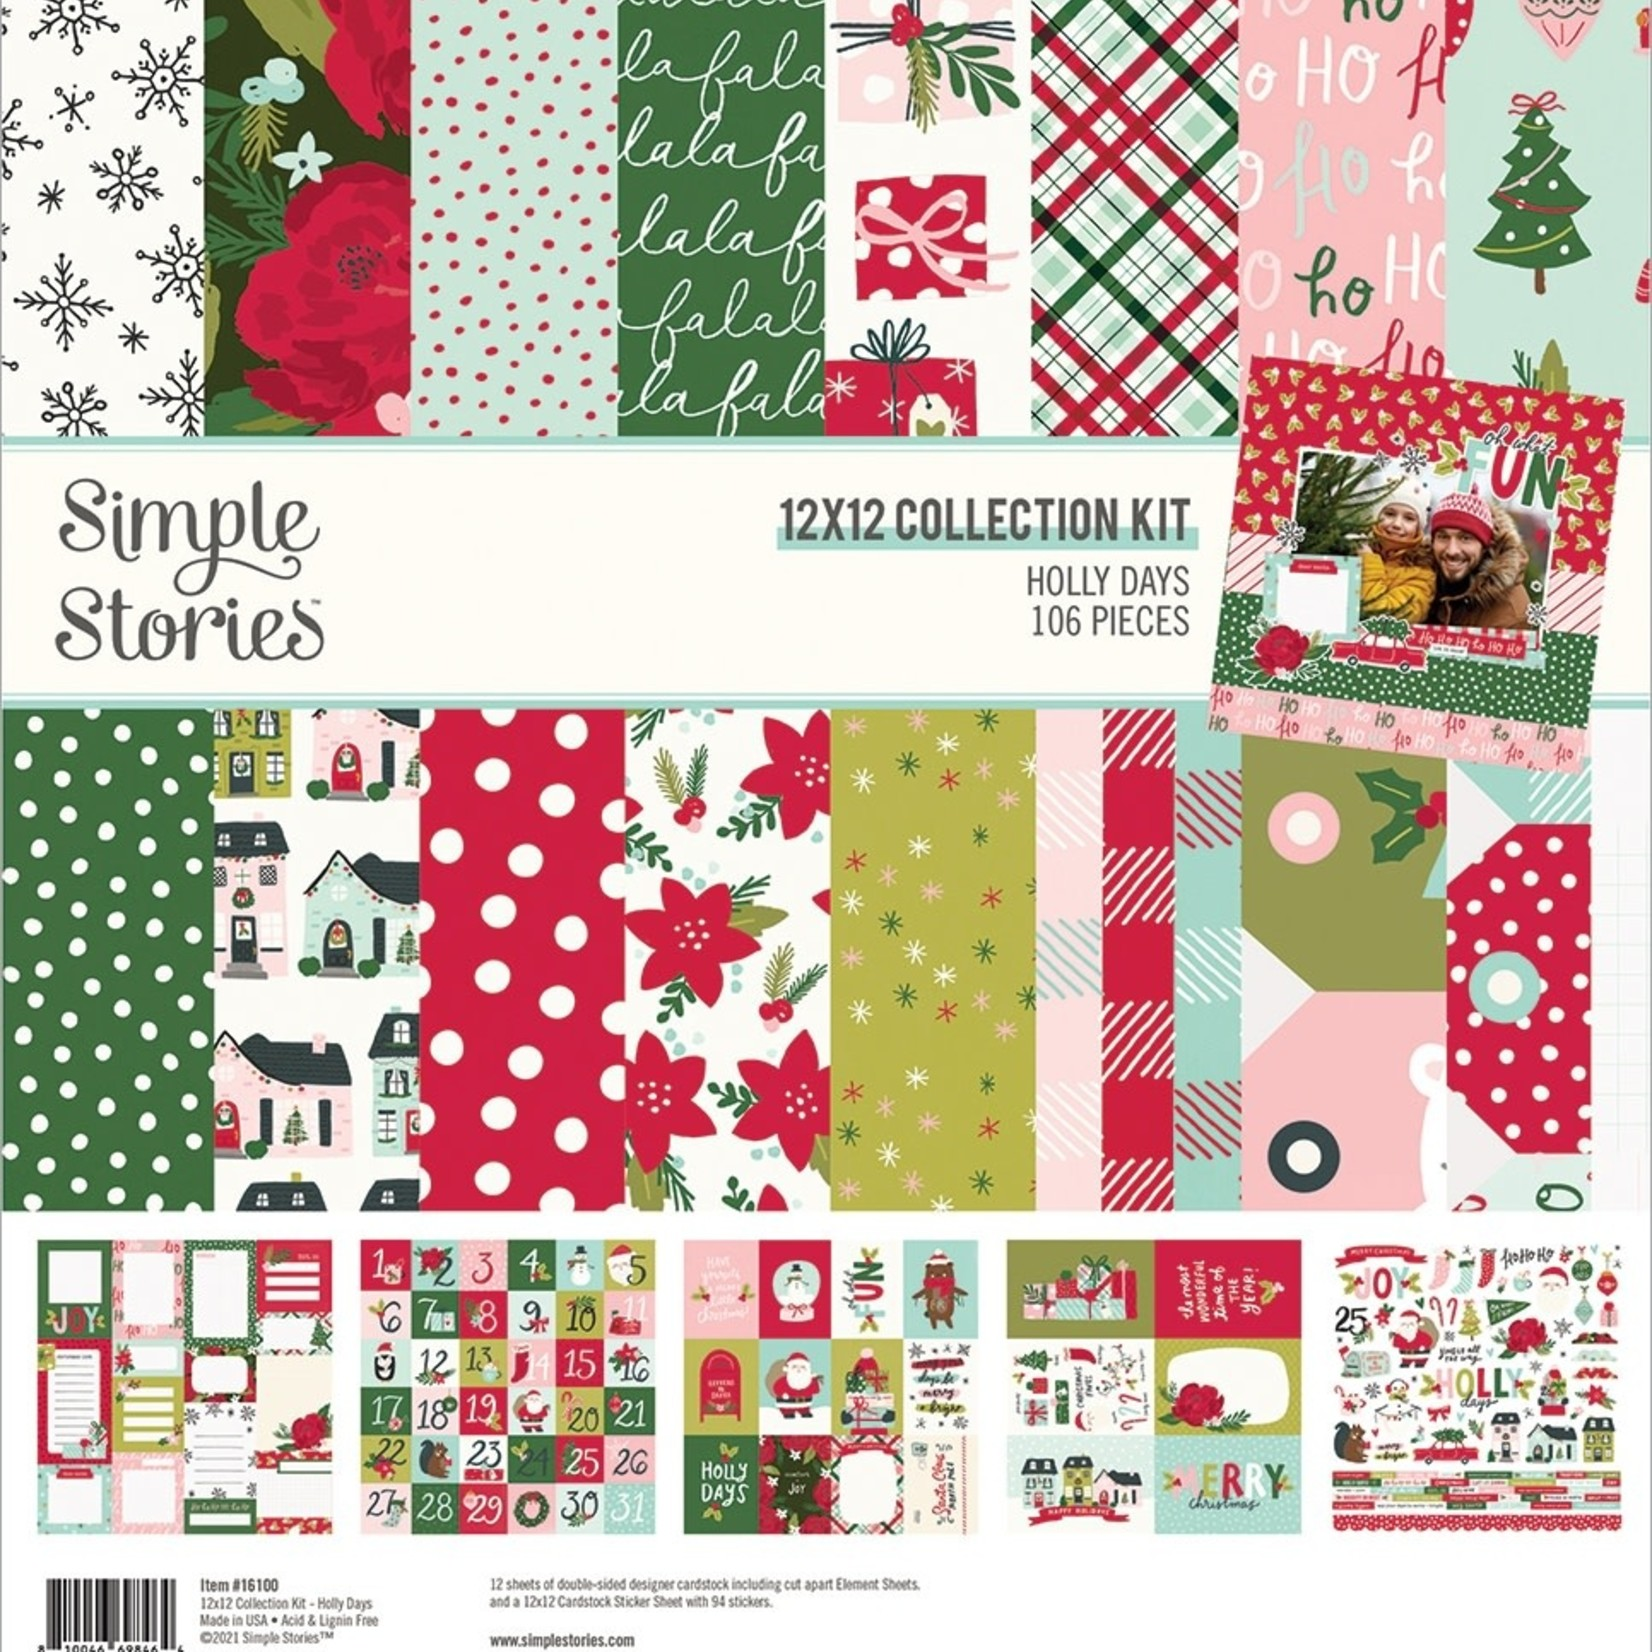 Simple Stories Simple Stories - 12x12 Collection Kit - Holly Days